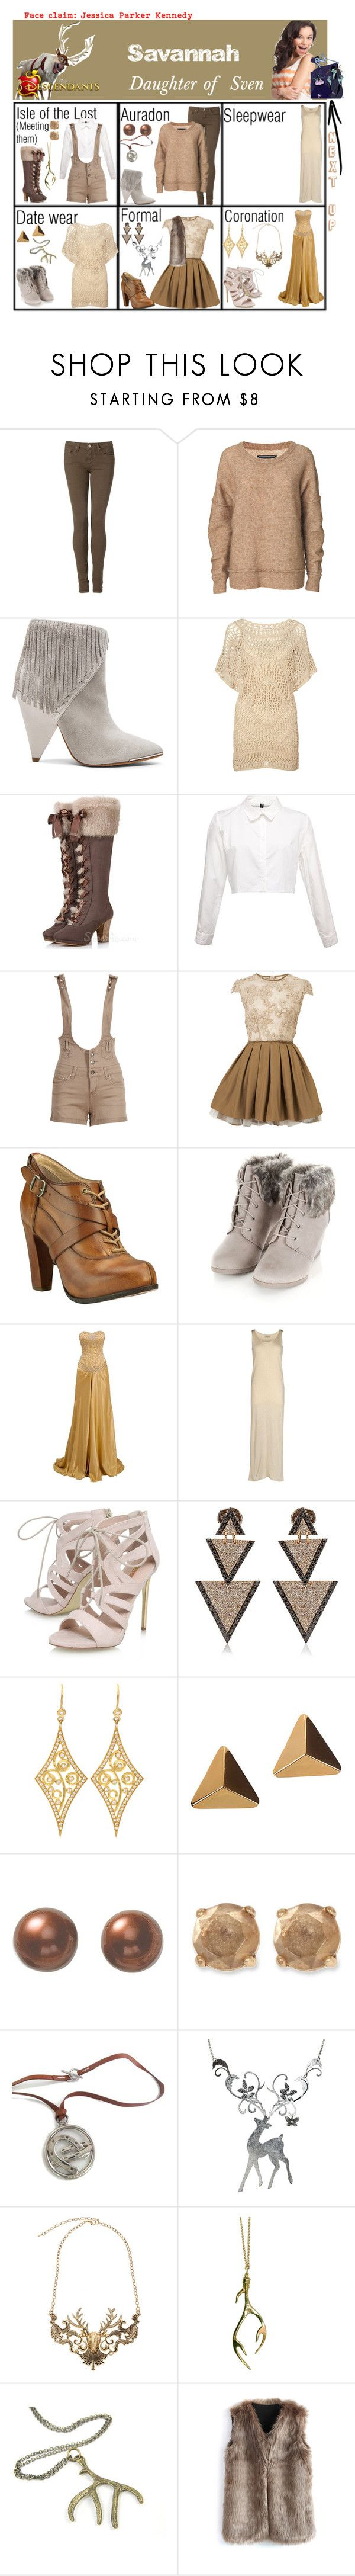 """Savannah. Daughter of Sven. Next up: The Fates"" by elmoakepoke ❤ liked on Polyvore featuring Tommy Hilfiger, By Malene Birger, IRO, Monsoon, Topshop, Timberland Boot Company, Grazia'lliani Soon, Carvela, Elise Dray and Annie Fensterstock"